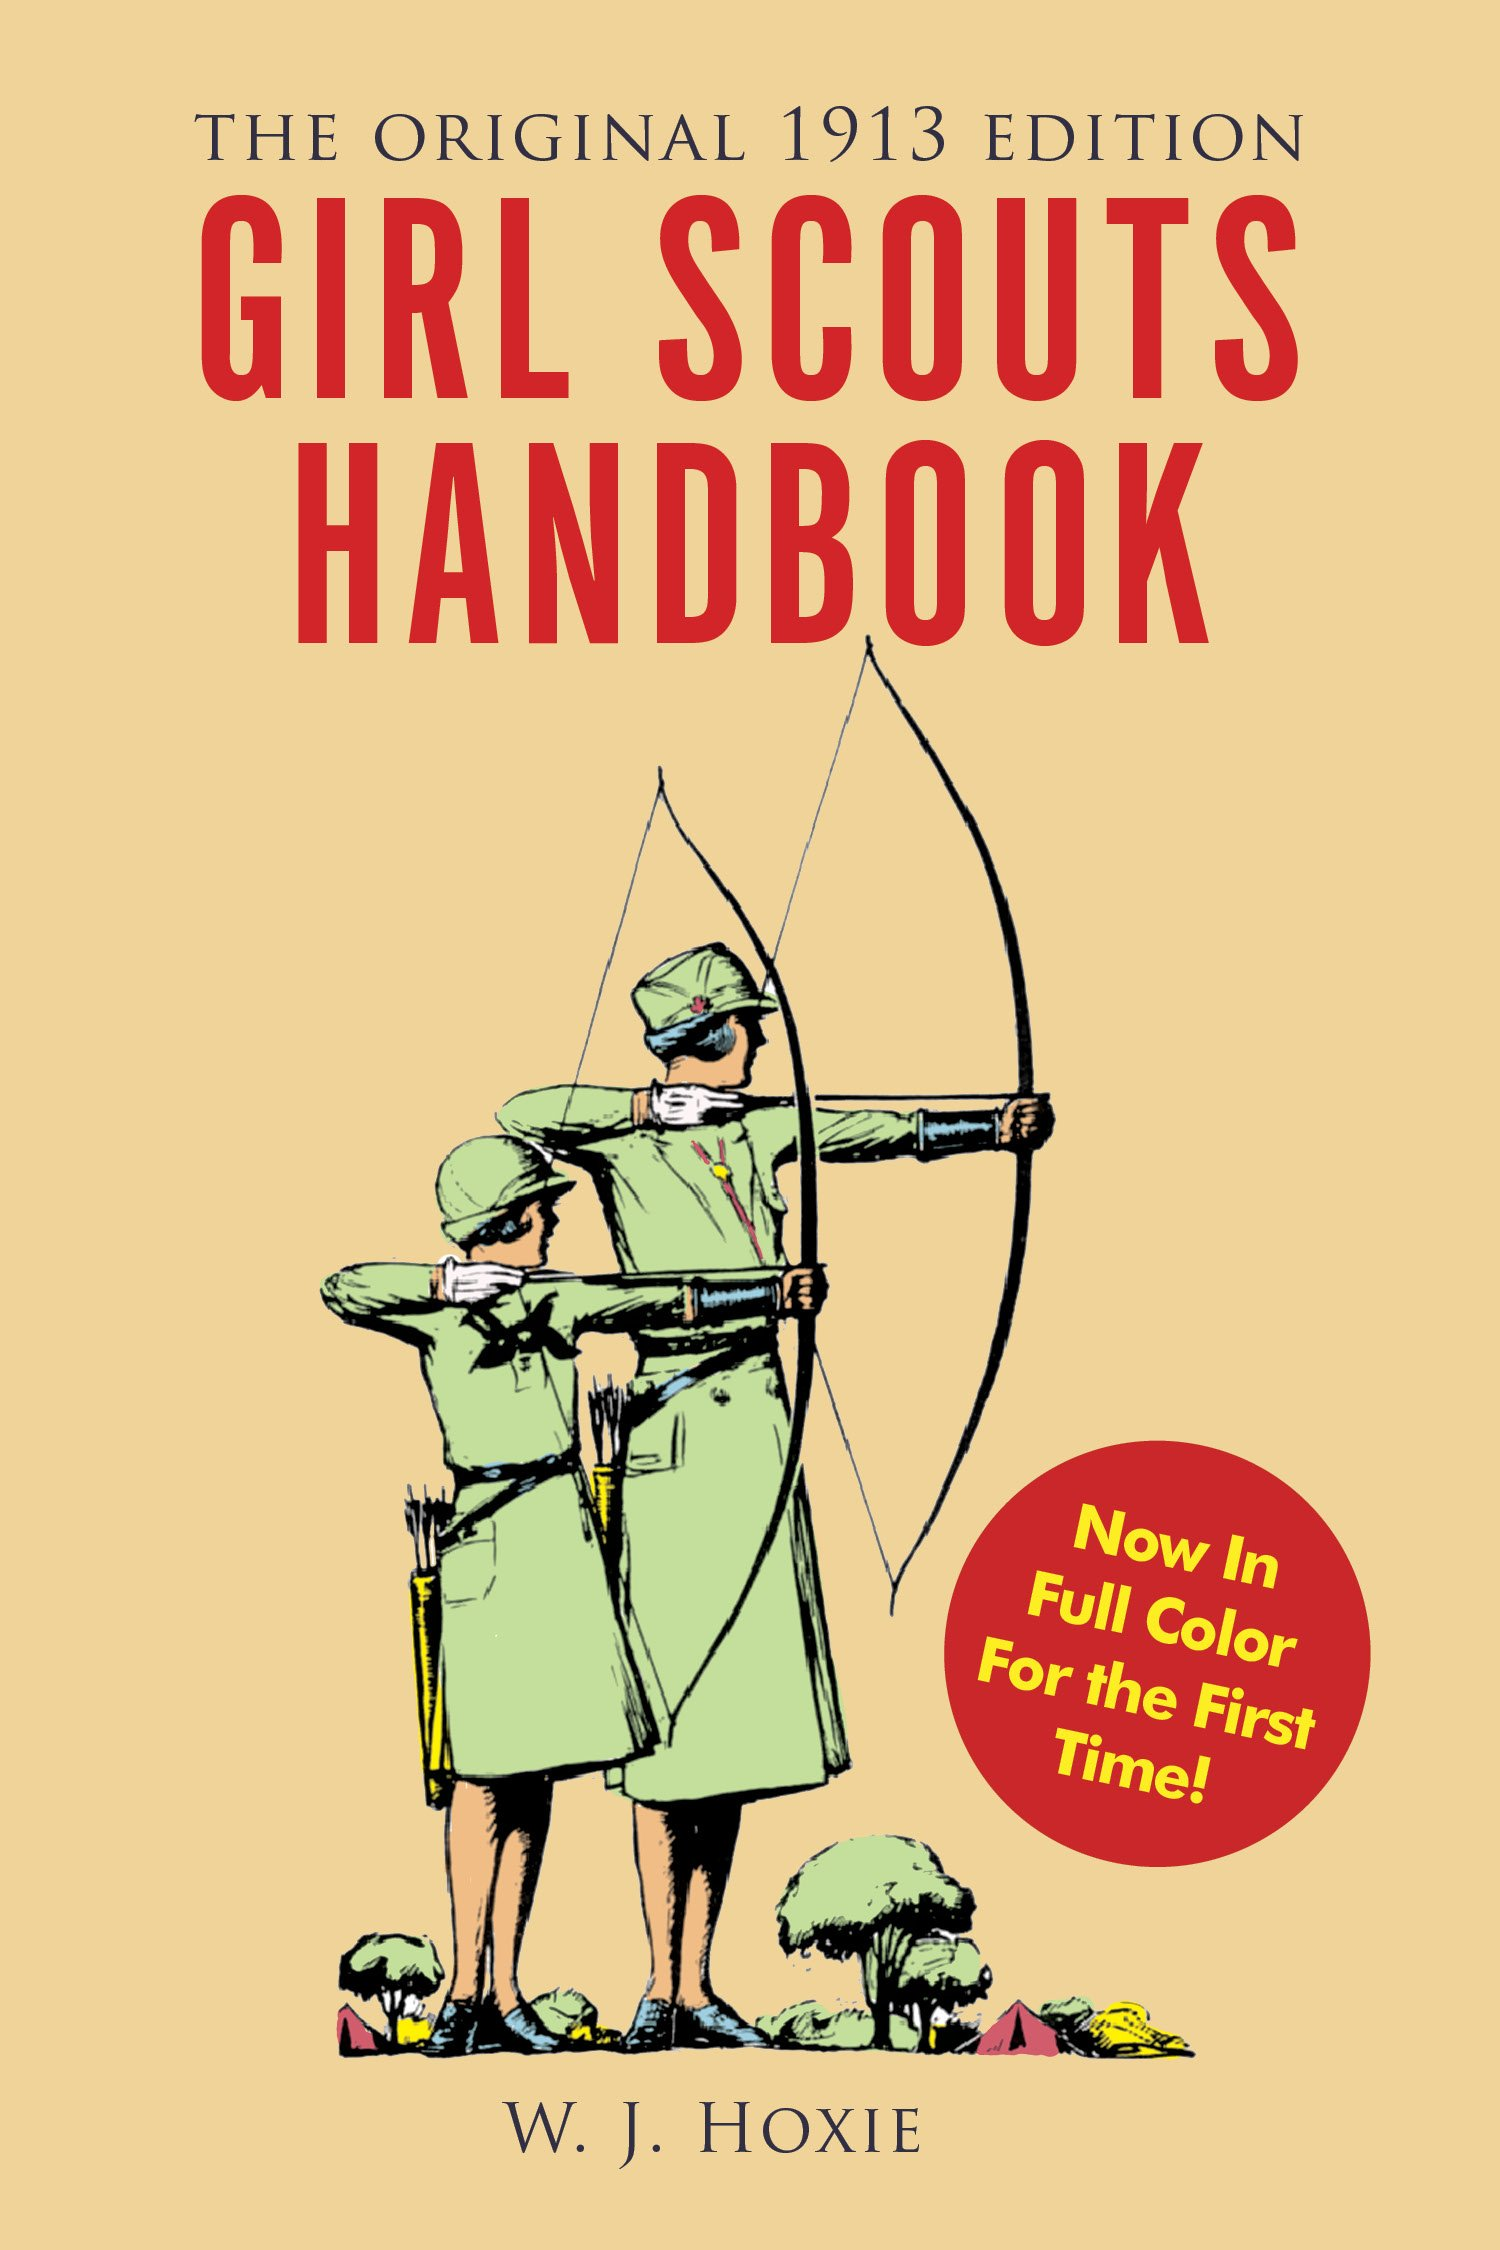 Girl Scouts Handbook: The Original 1913 Edition